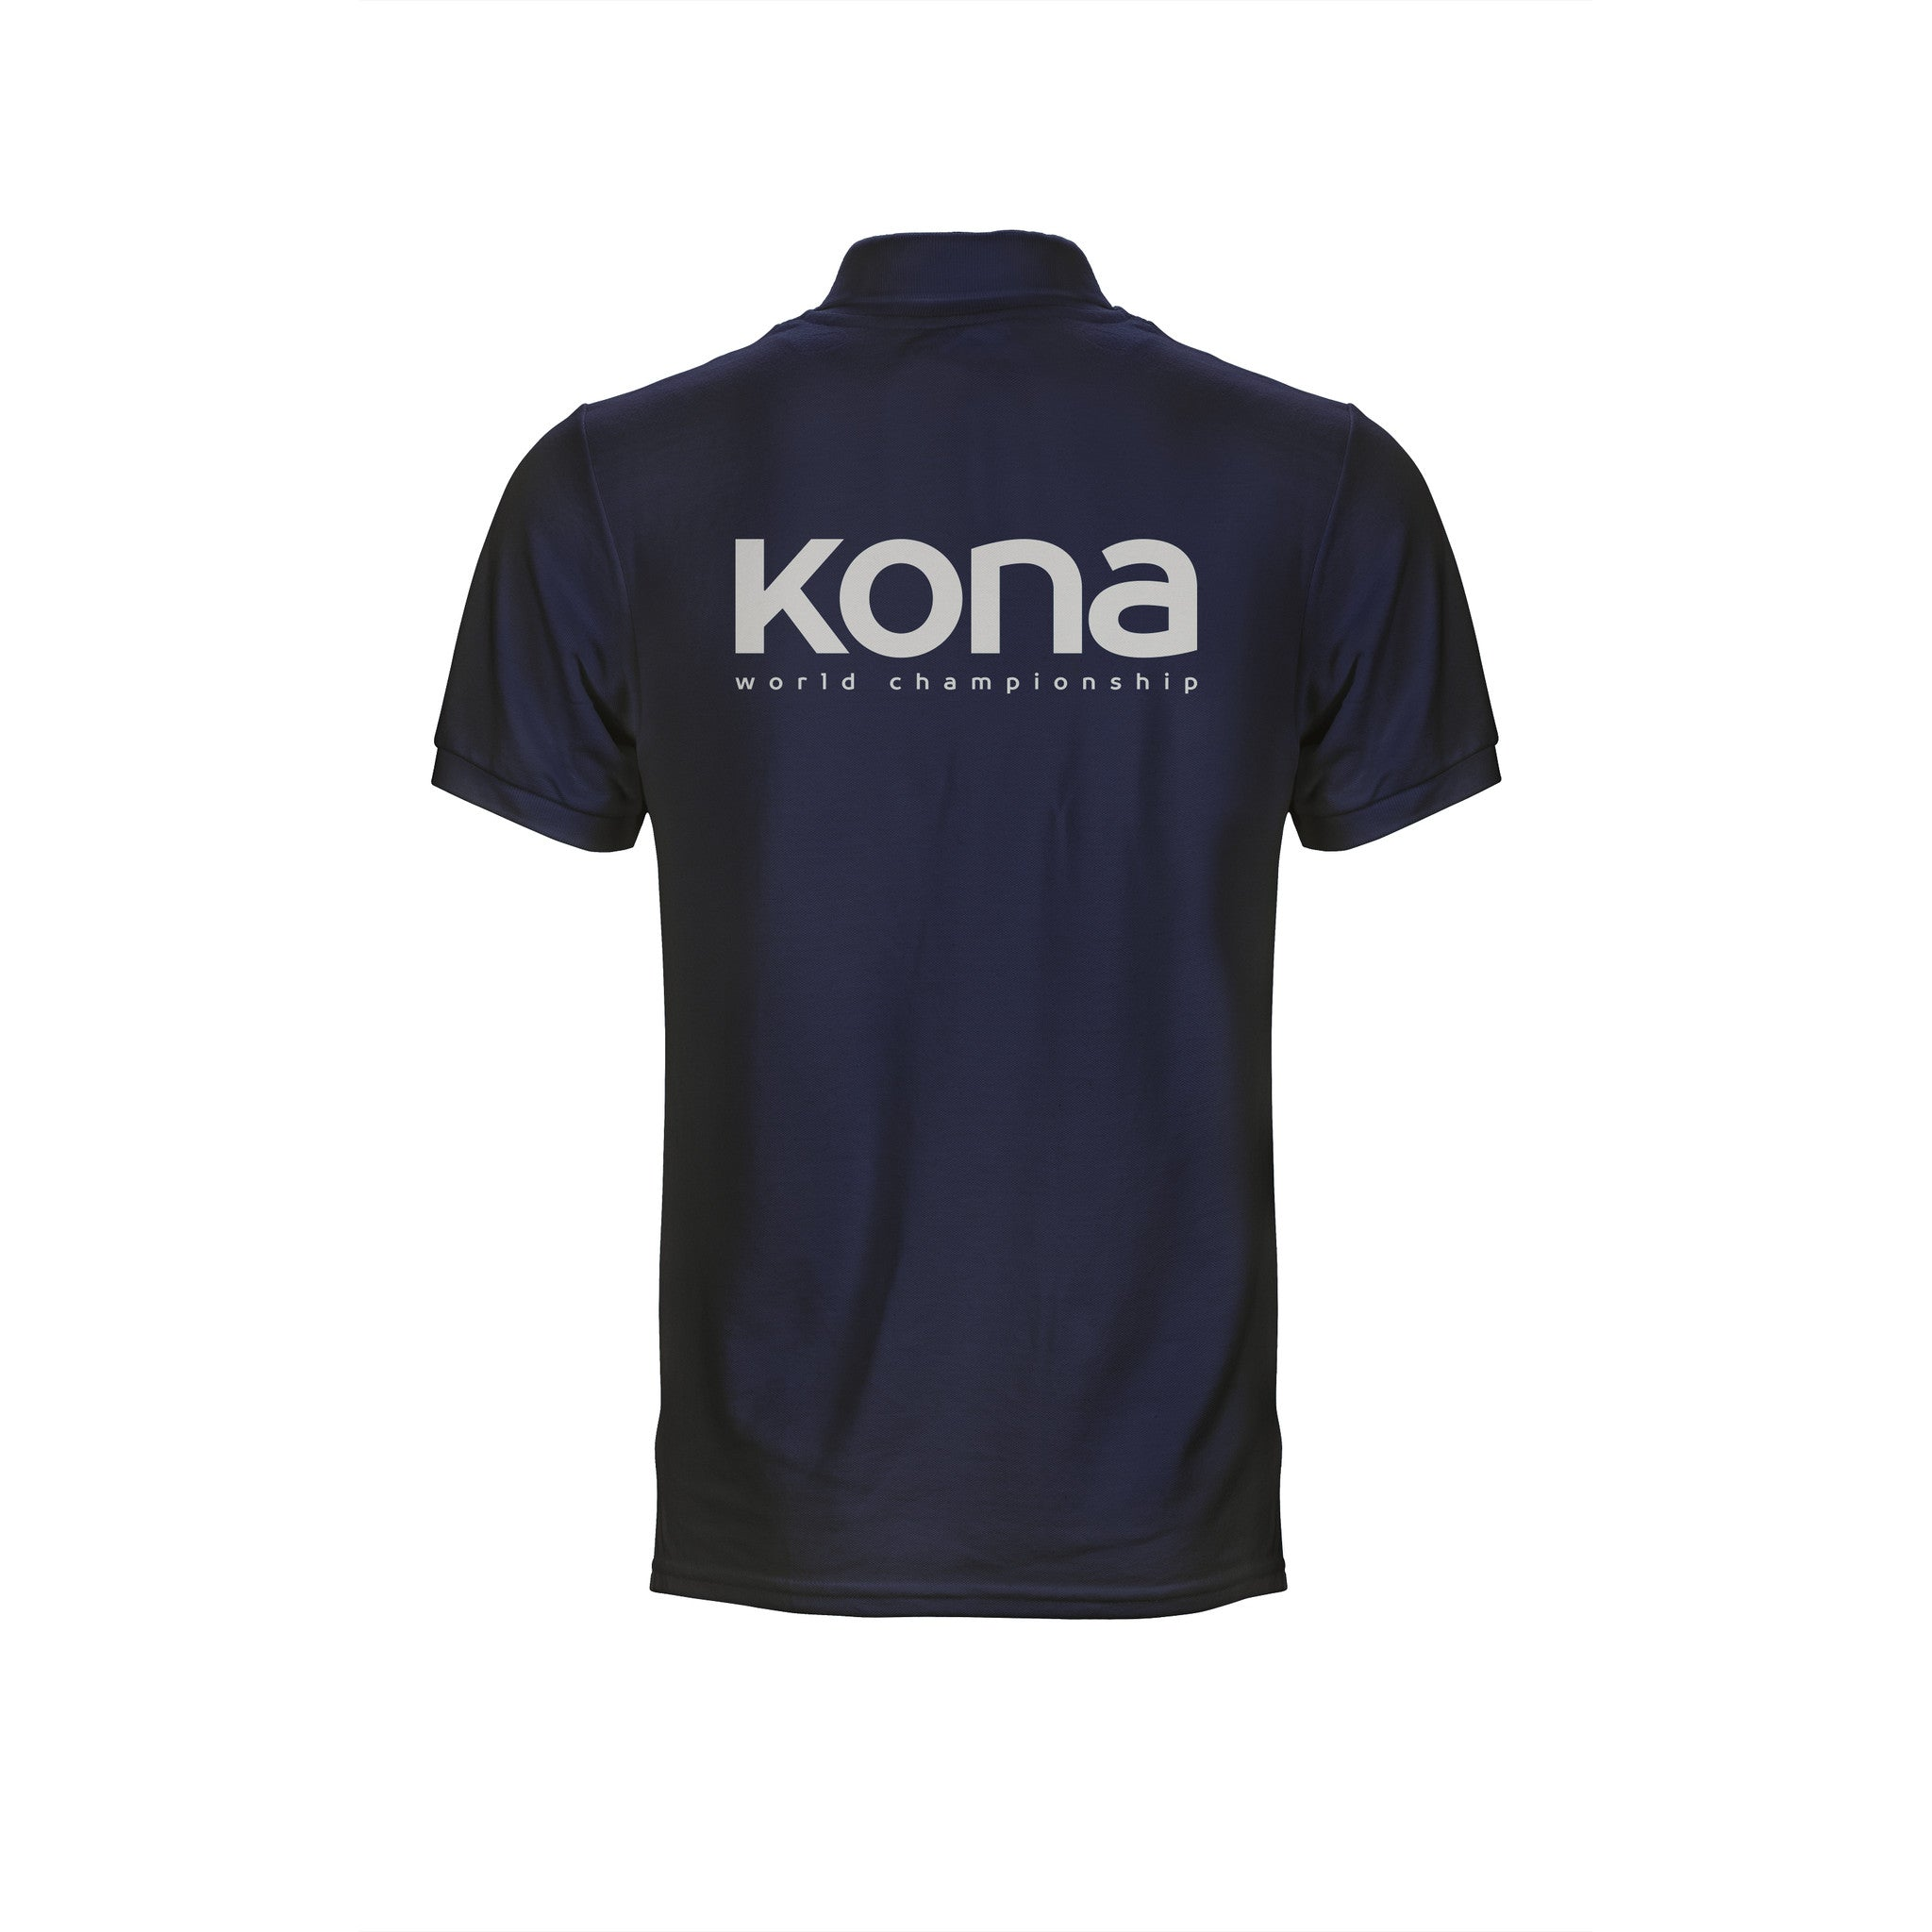 Kona World Championship - Polo